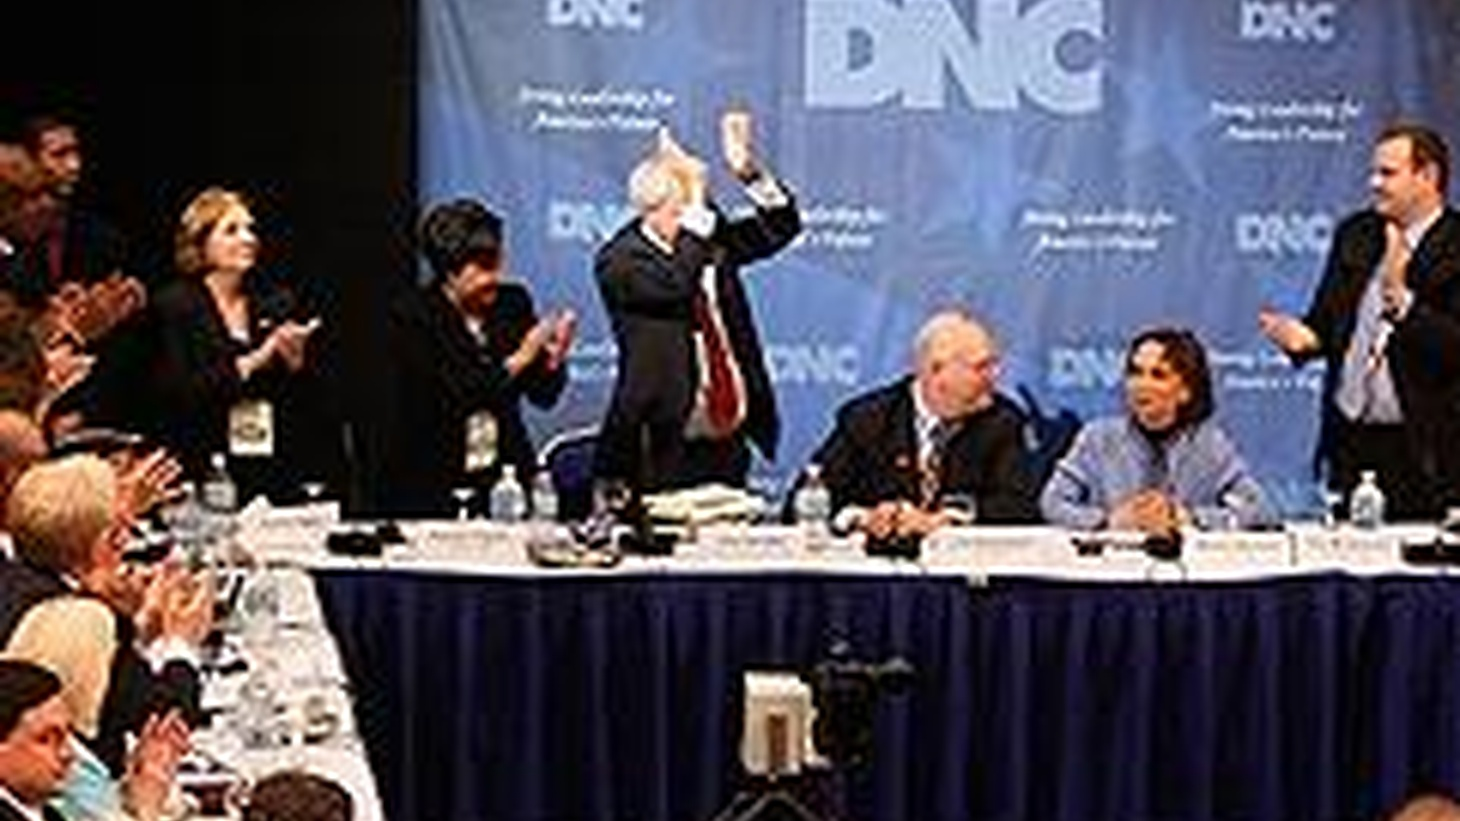 Over the weekend, the Democratic Party's Rules and Bylaws Committee made decisions about the disputed Florida and Michigan primaries. Hillary Clinton won a decisive victory in Puerto Rico's primary. Tomorrow come elections in Montana and South Dakota, the last two in a long primary campaign. Also, Senator Ted Kennedy undergoes brain surgery, and it's dark on the runway. fashion legend Yves Saint Laurent passed away yesterday in Paris. Sara Terry guest hosts.